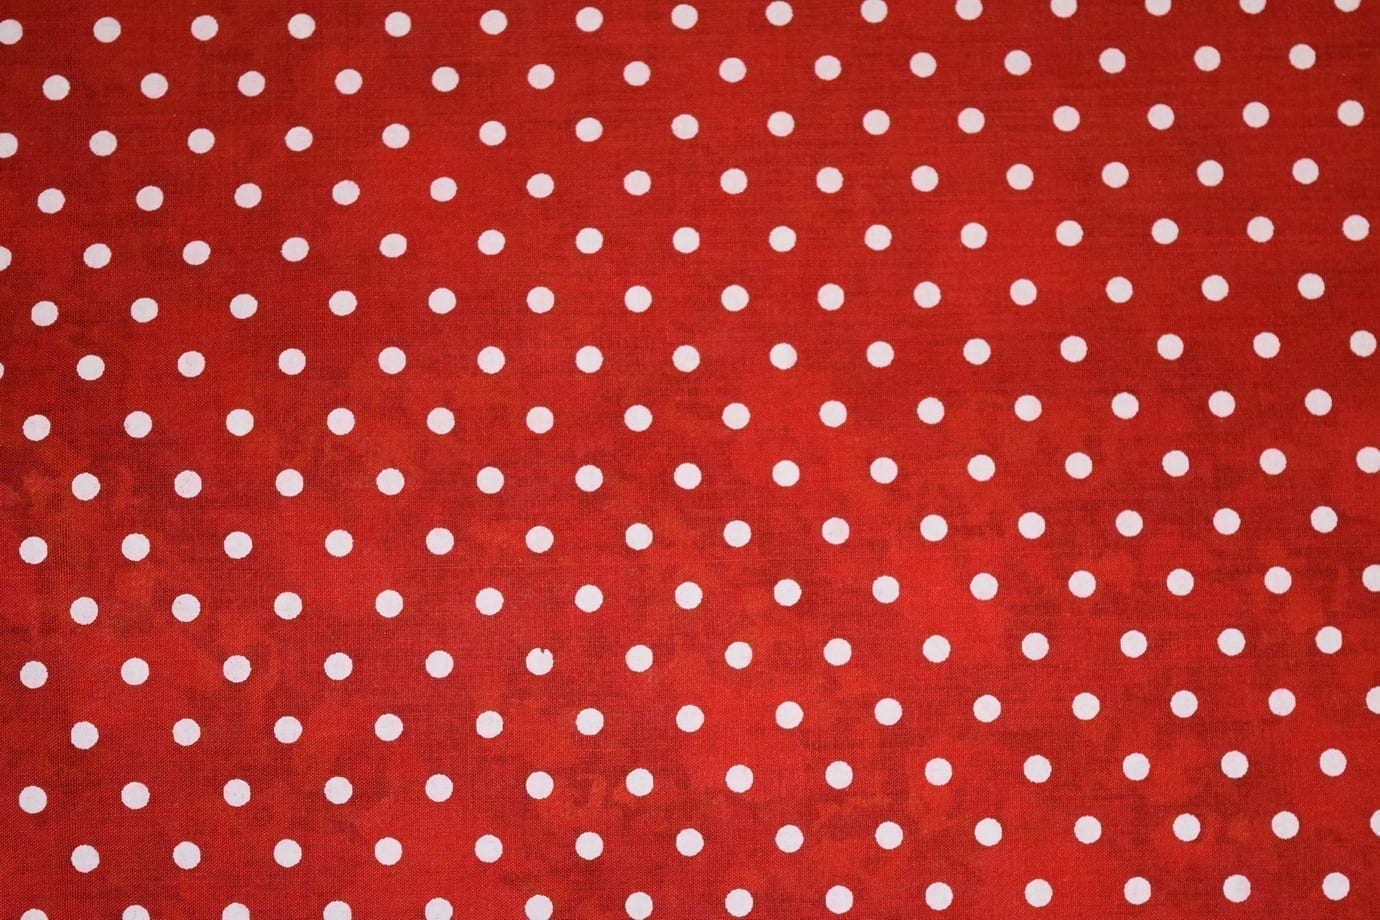 Small Polka Dots Red COTTON PRINTED FABRIC PC307 1